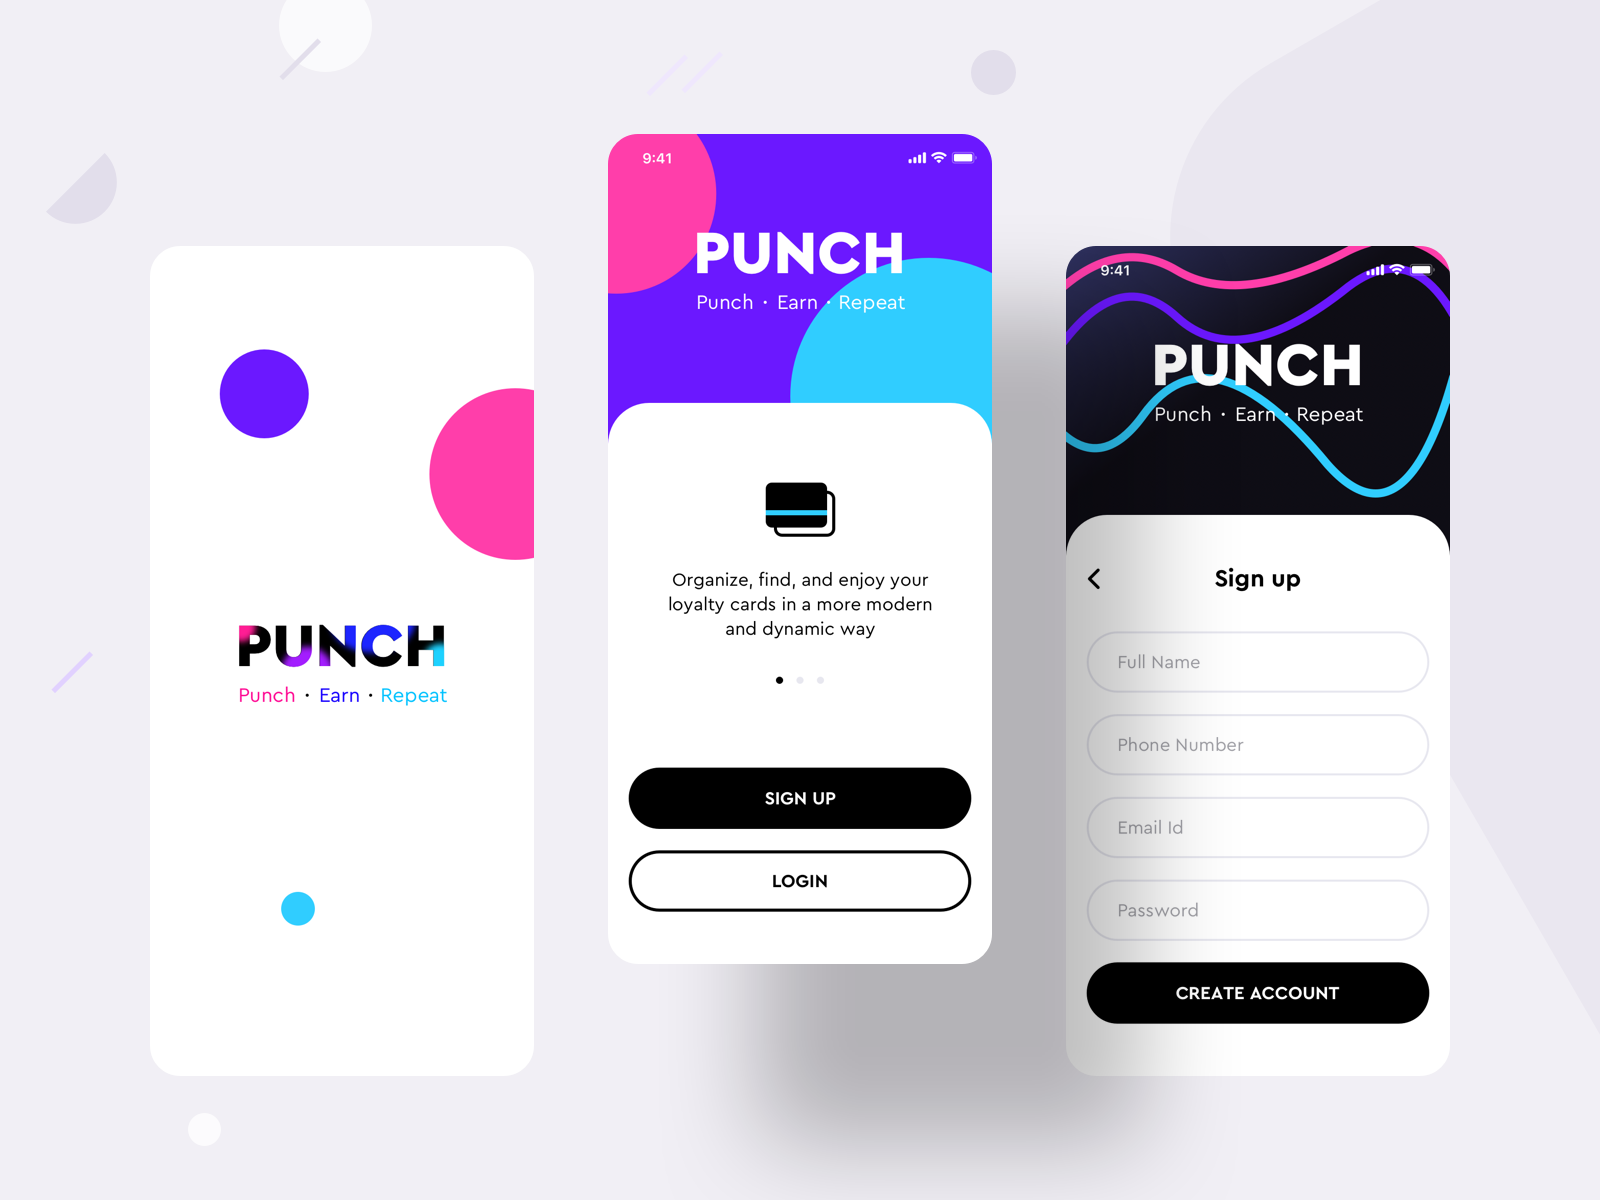 Loyalty Cards Collection Product Punch App Version 2 Loyalty Card App Design App Mockup Free